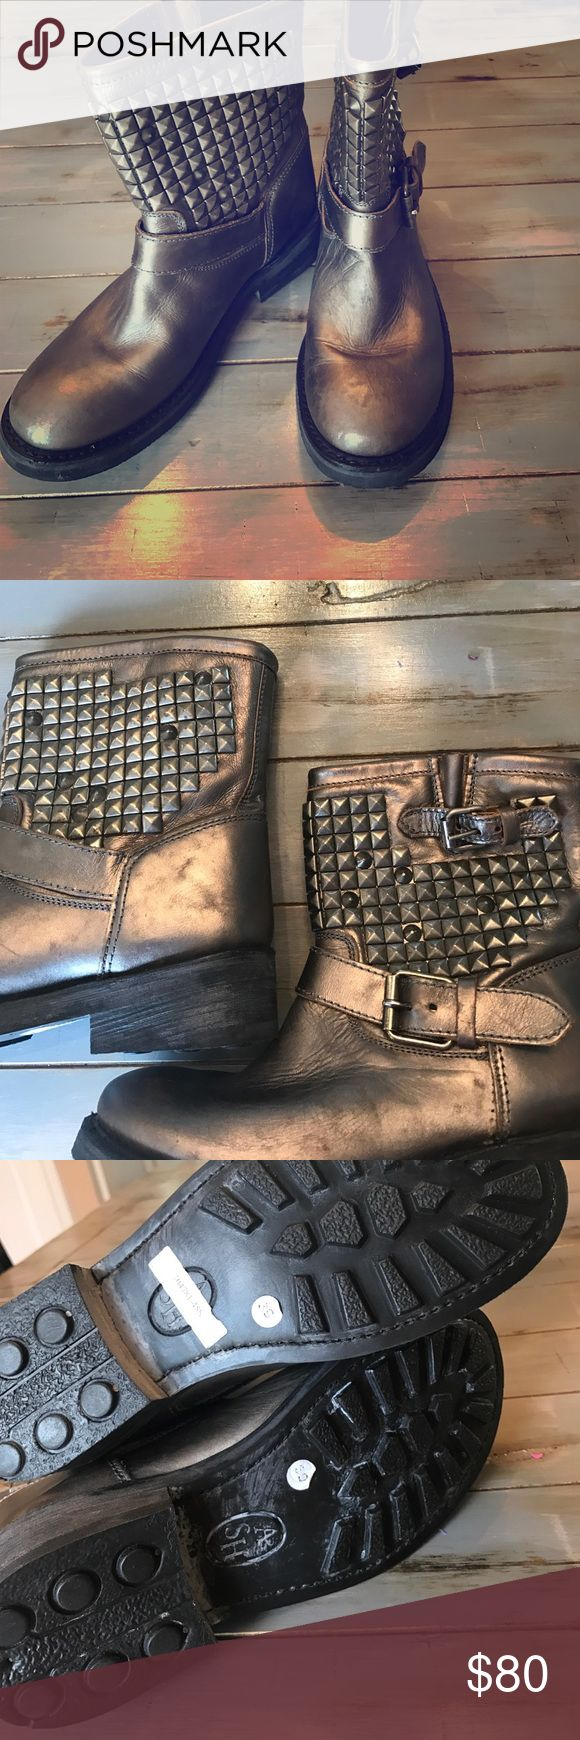 Ash Boots NWOT Ash boots! Bronze kinda color with studs around top! I love these but they are way too small! They're sized a 39 (9) but are def more like an 8!!! Ash Shoes Combat & Moto Boots